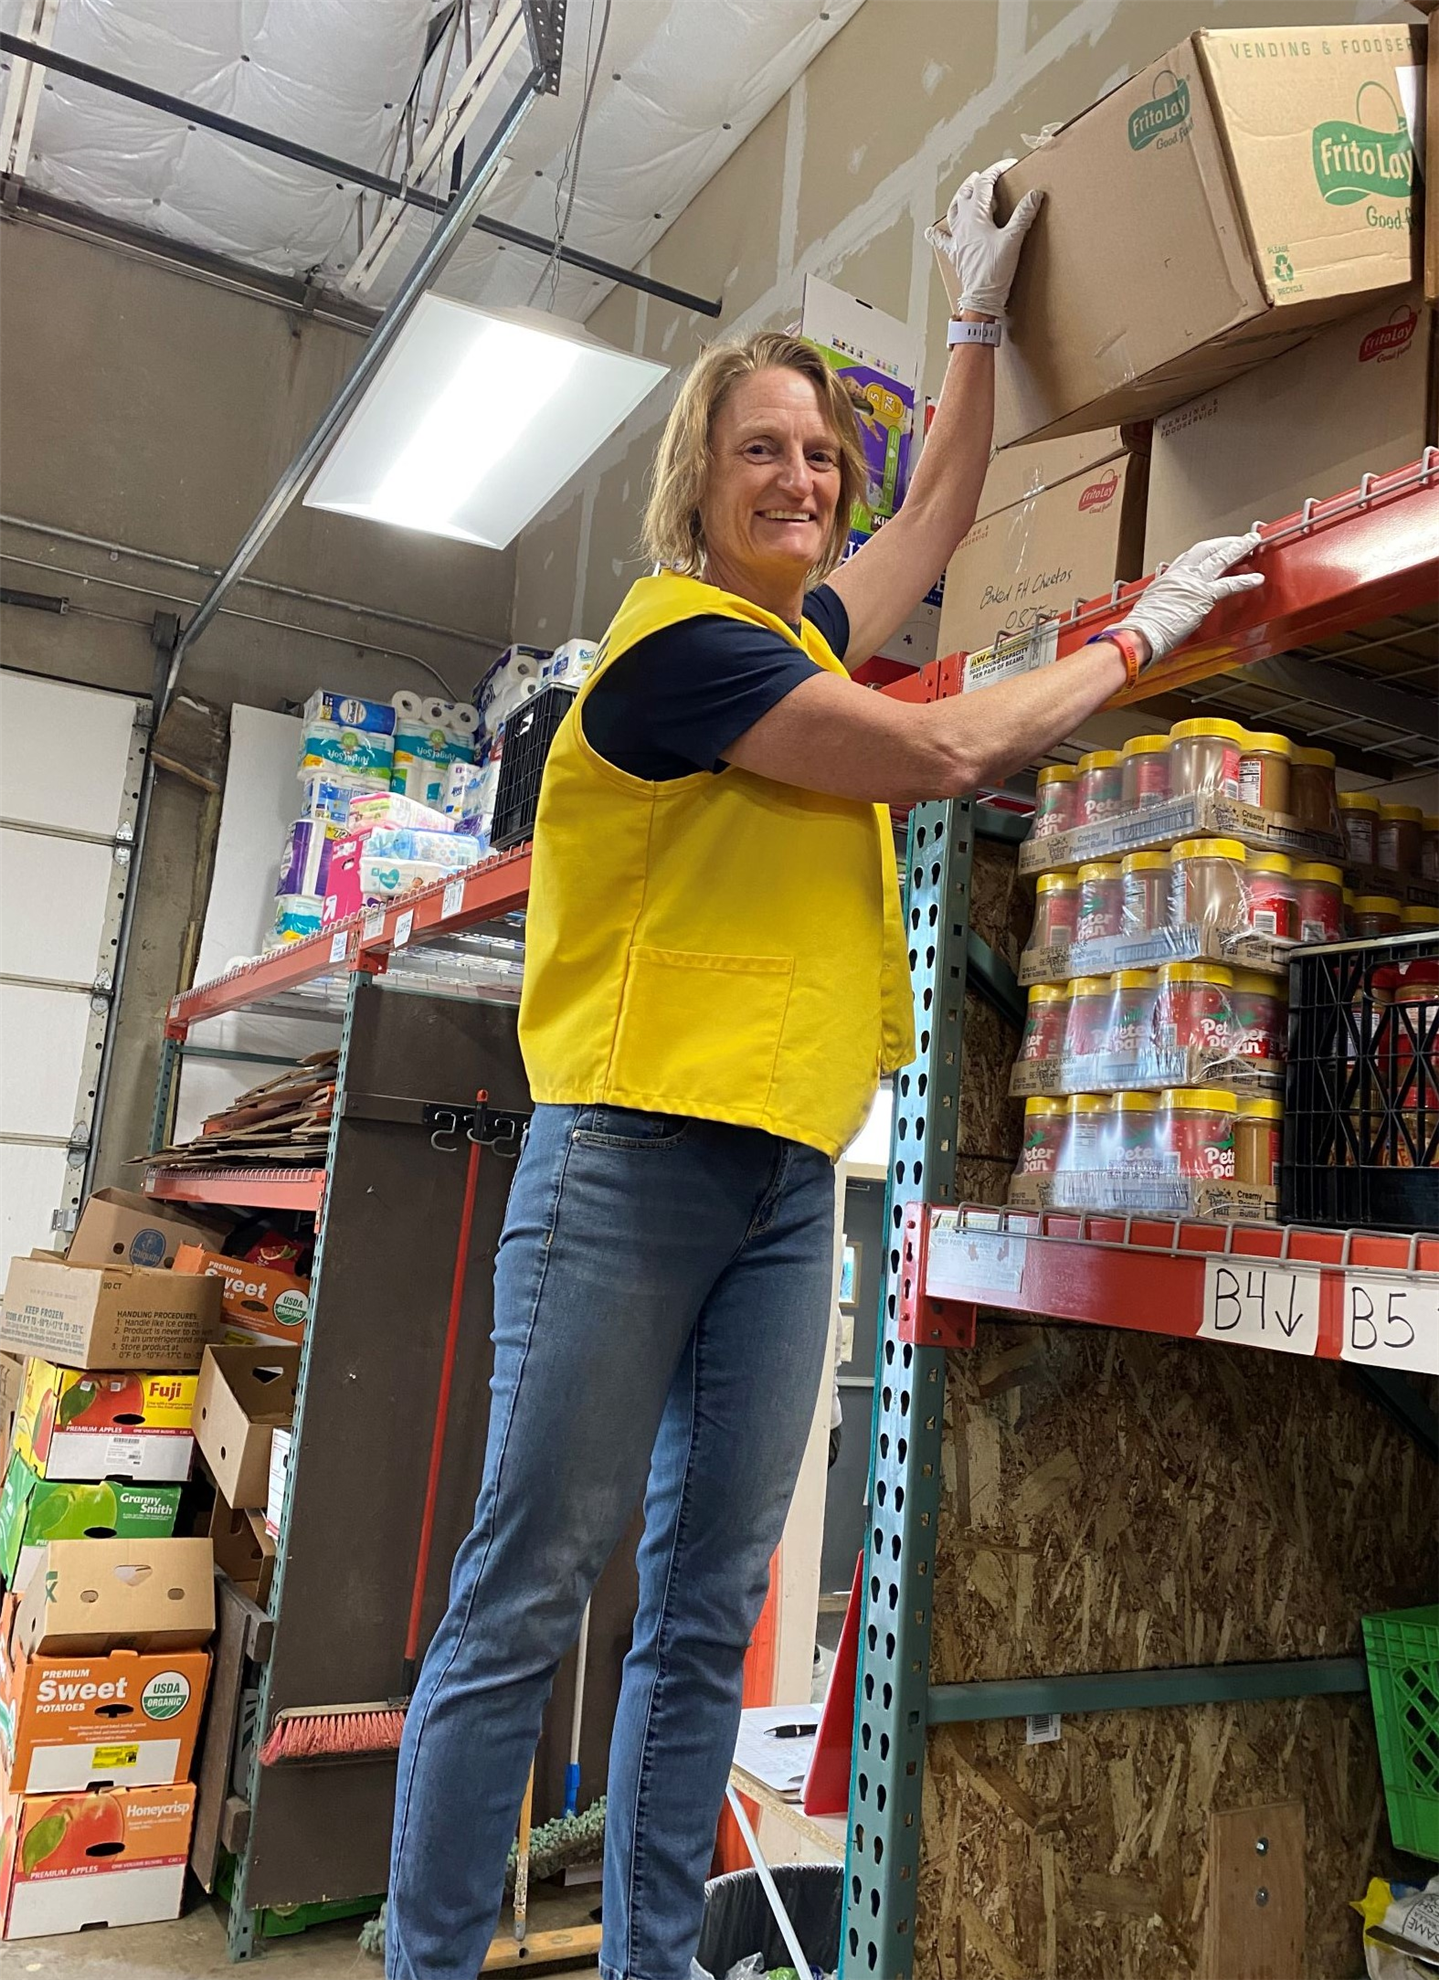 Rotarian Sharon Sjostrom volunteering at the Help and Hope Center Food Pantry